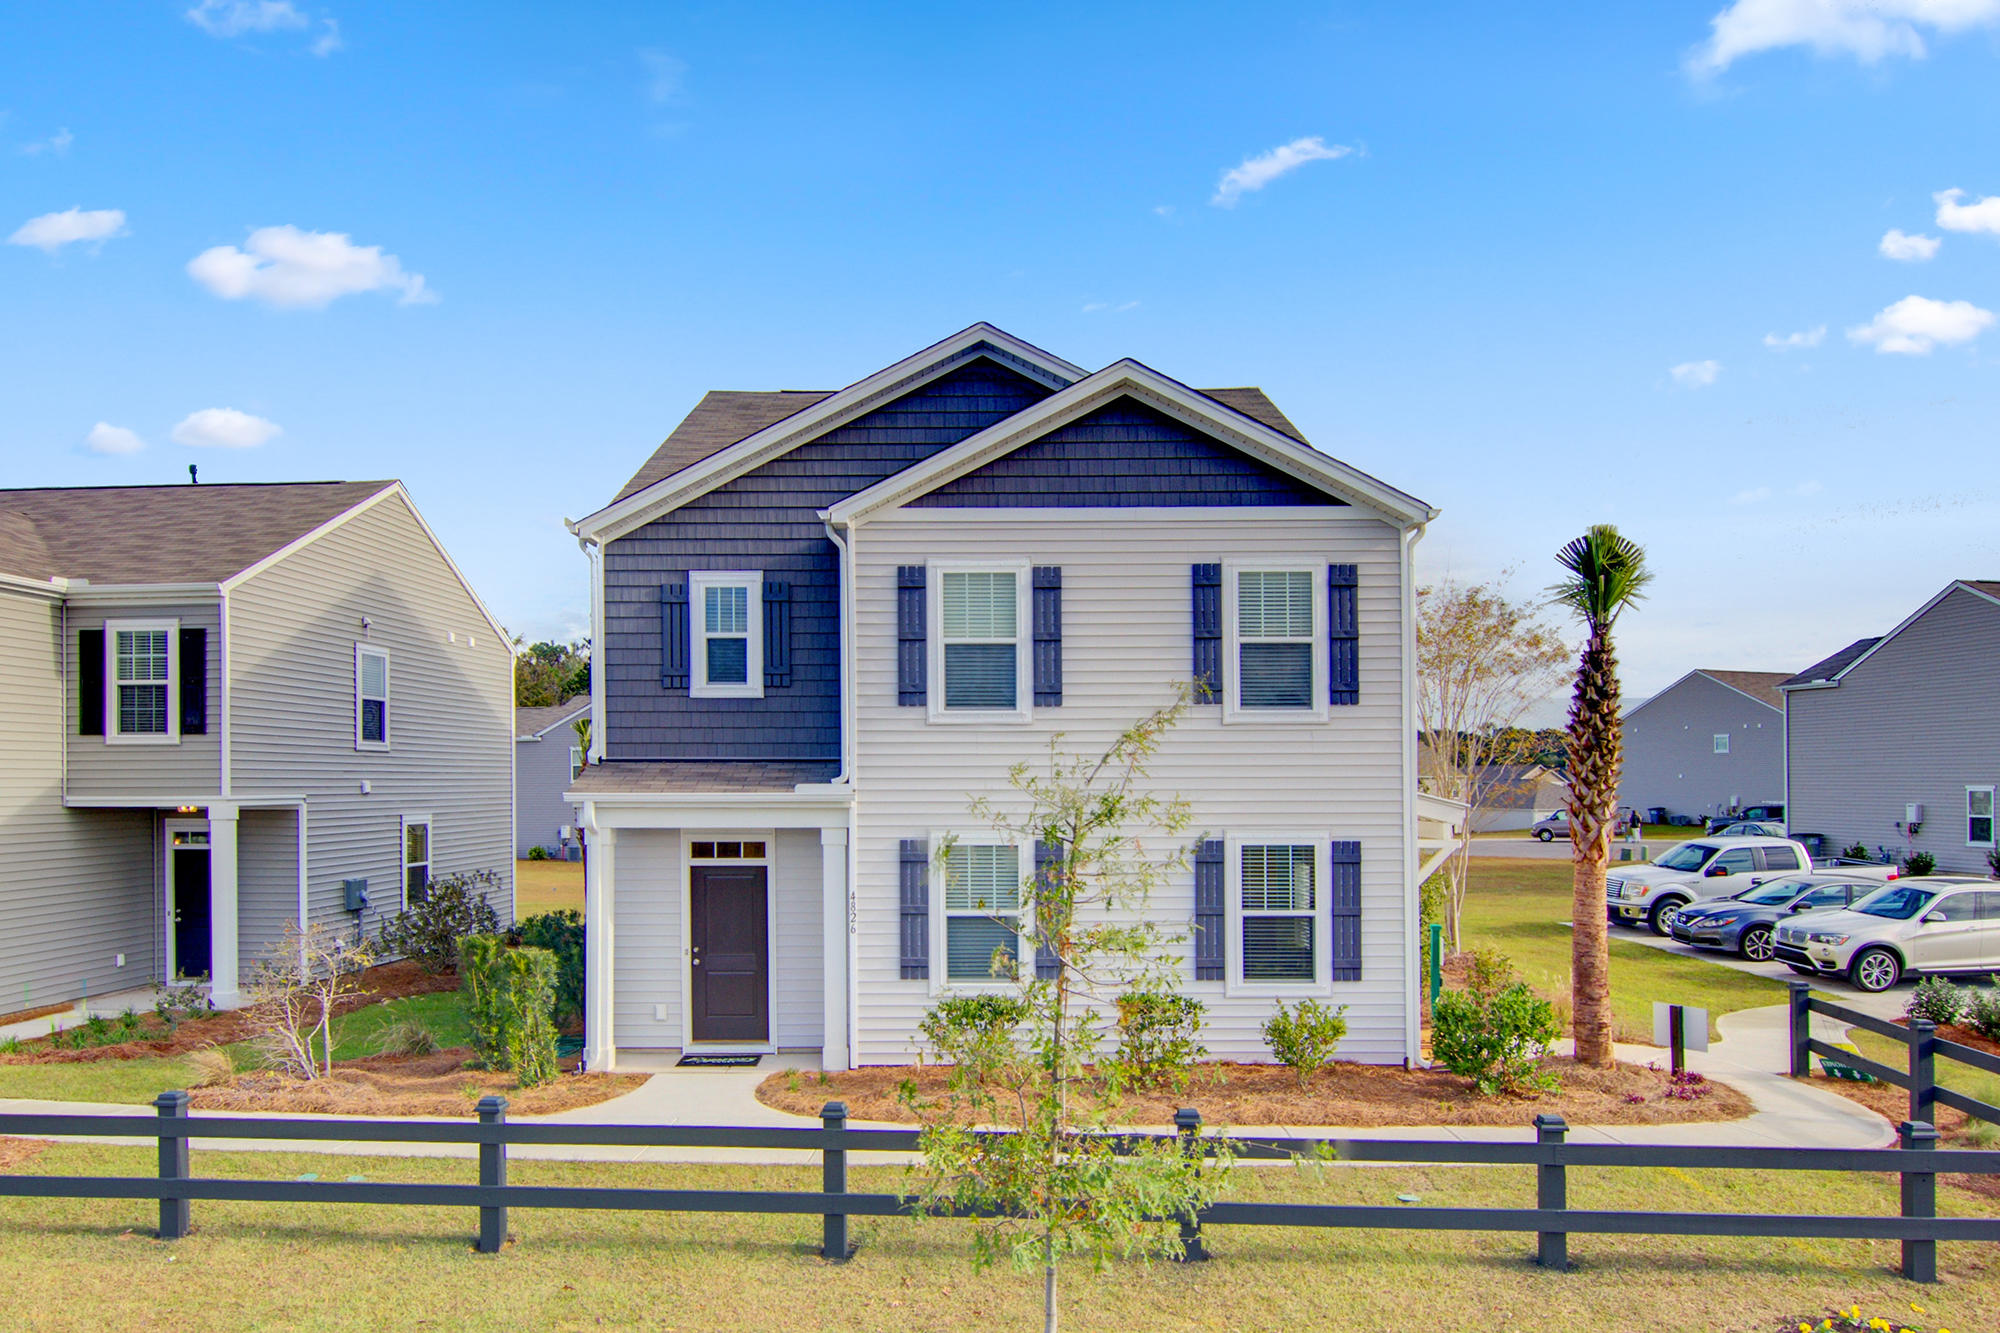 4908 Paddy Field Way Ladson, SC 29456